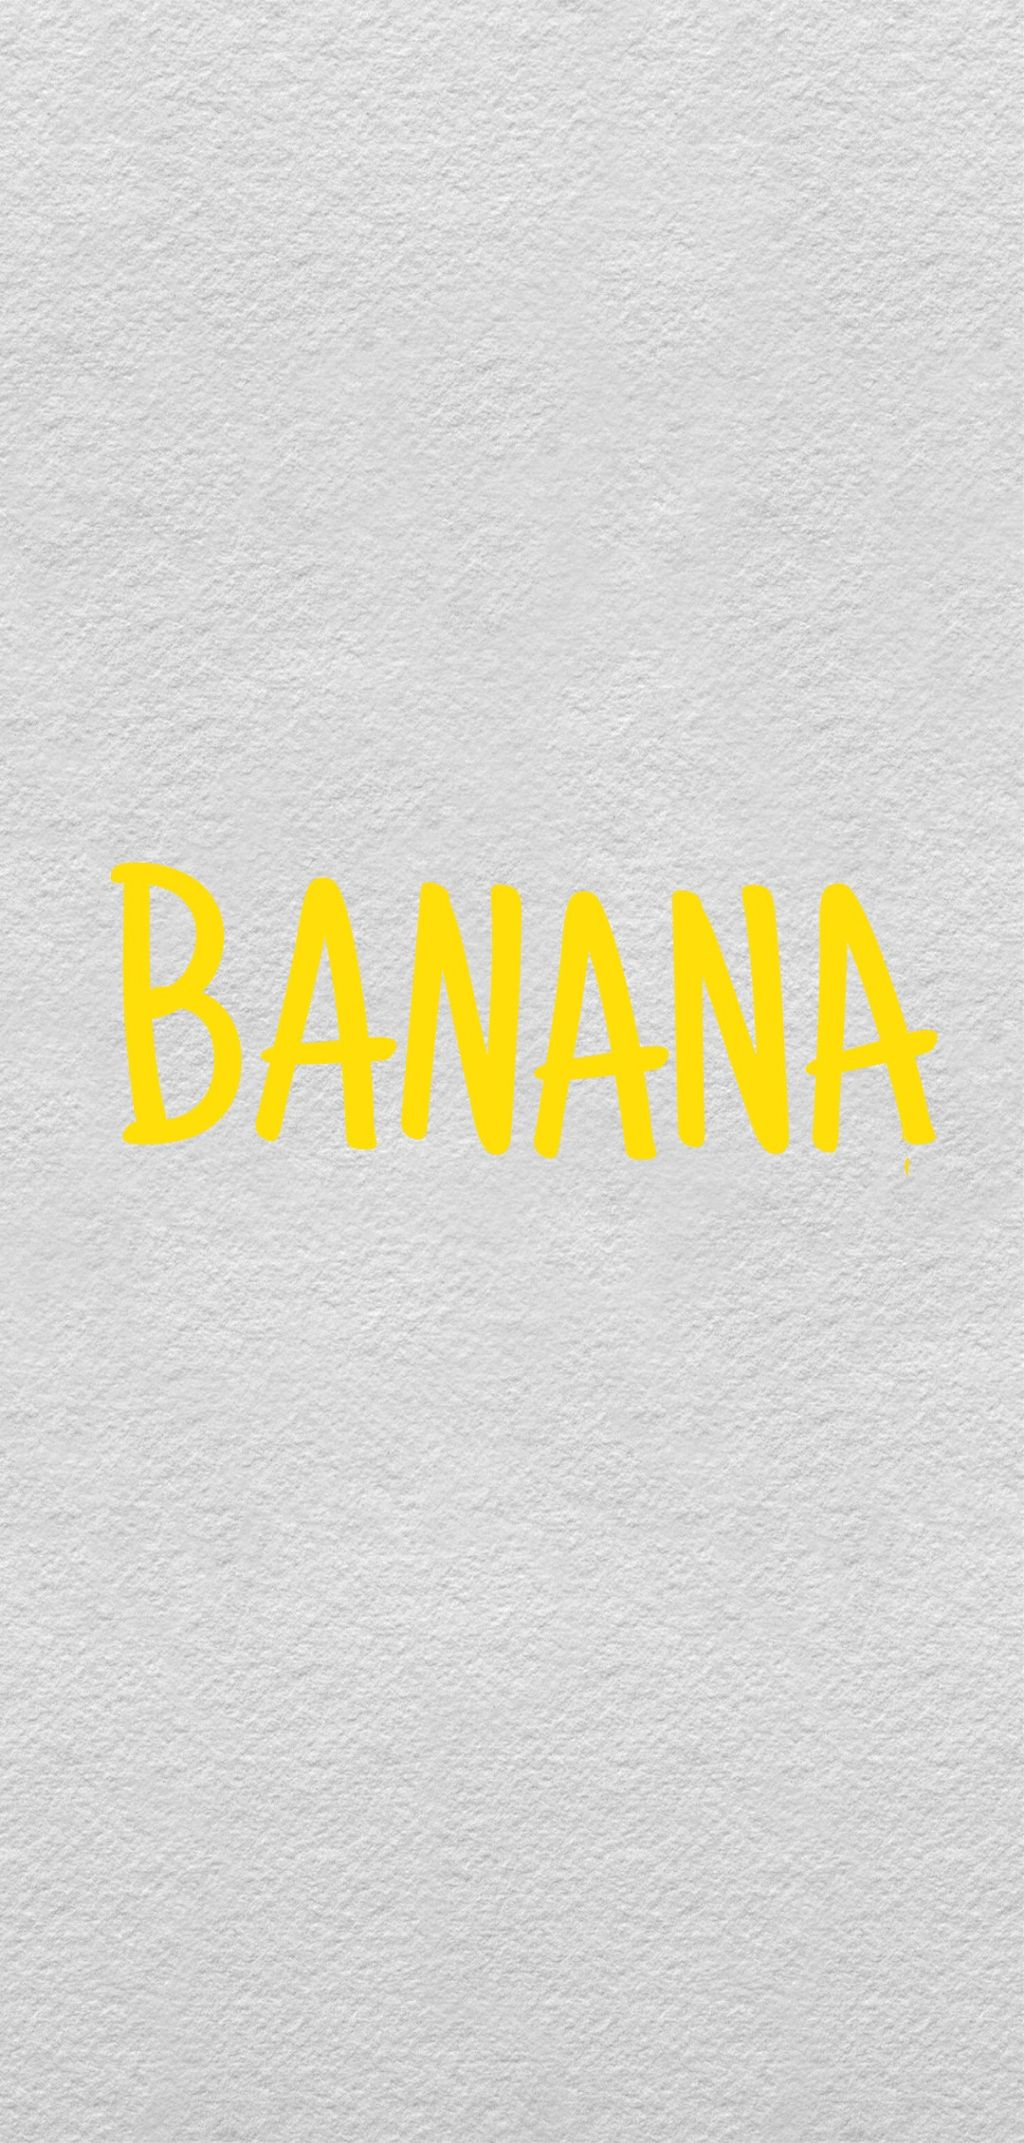 Banana ! #fruits  #fruity #bananas #yellow #bananas #colorful  #freetoedit